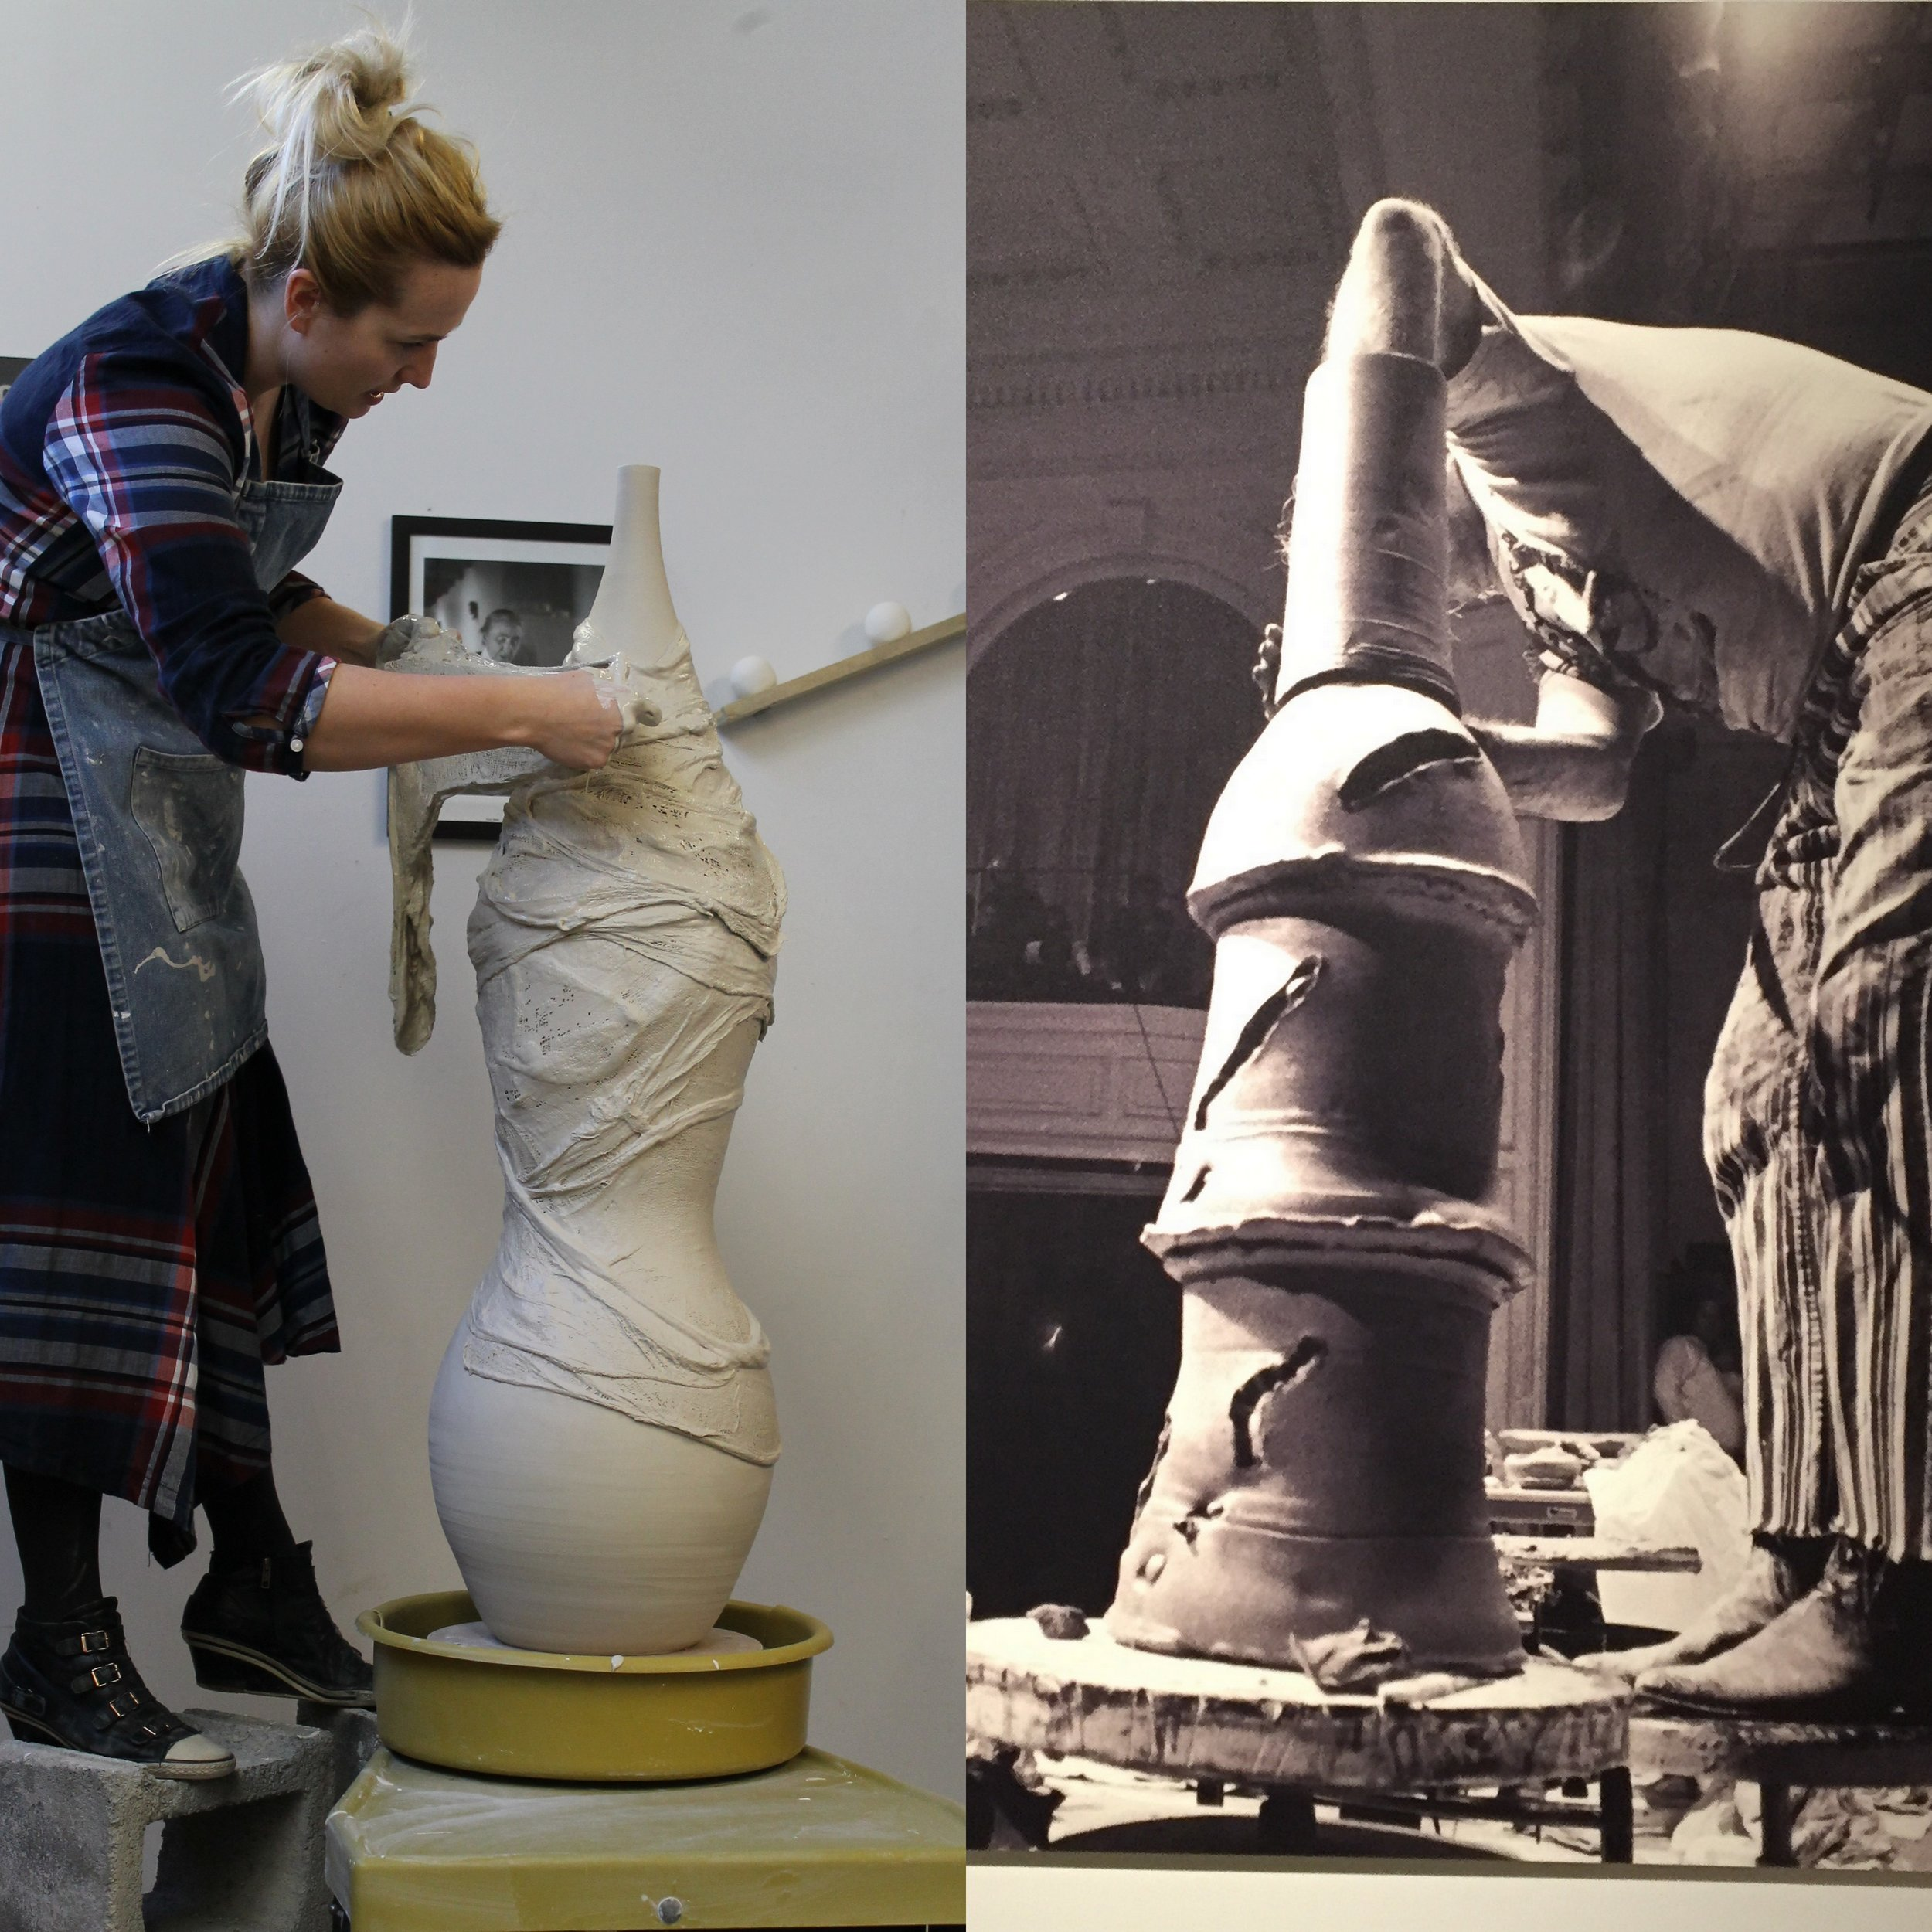 - In response to Voulkos' overt masculinity and brute strength, I threw a compounded curved form that matched his sculpture's height. I contrasted Voulkos' rough attachments by finessing my seam-lines. I opted to use finer porcelain than his iron-specked stoneware. Where Voulkos gouged his forms, I swaddled mine.